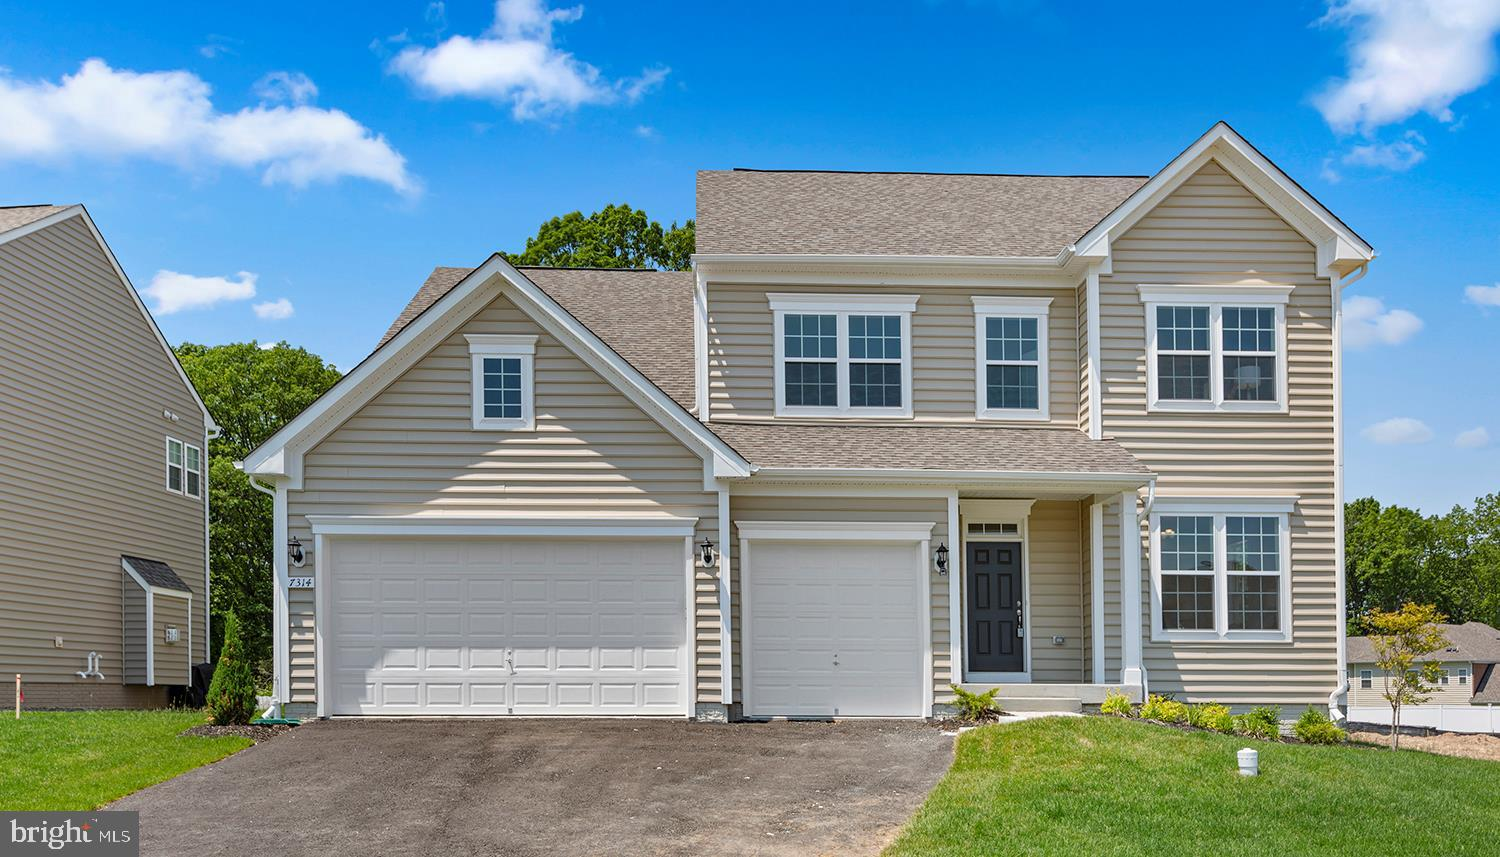 7314 ELBRIDGE COURT, JESSUP, MD 20794